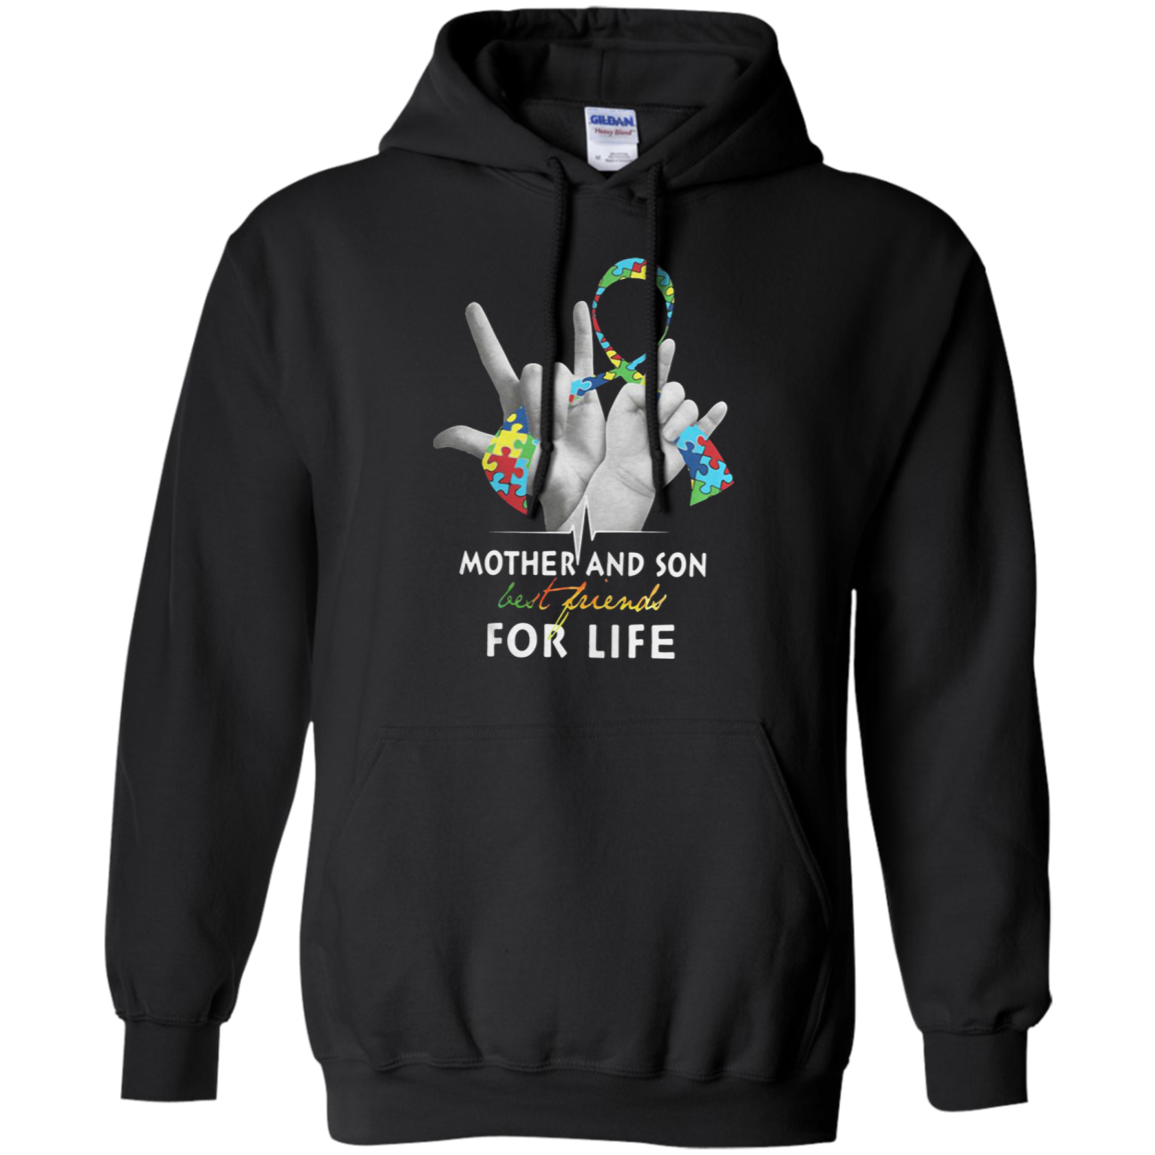 Autism Mother And Son Best Friends For Life G185 Pullover 8 Oz. Shirts